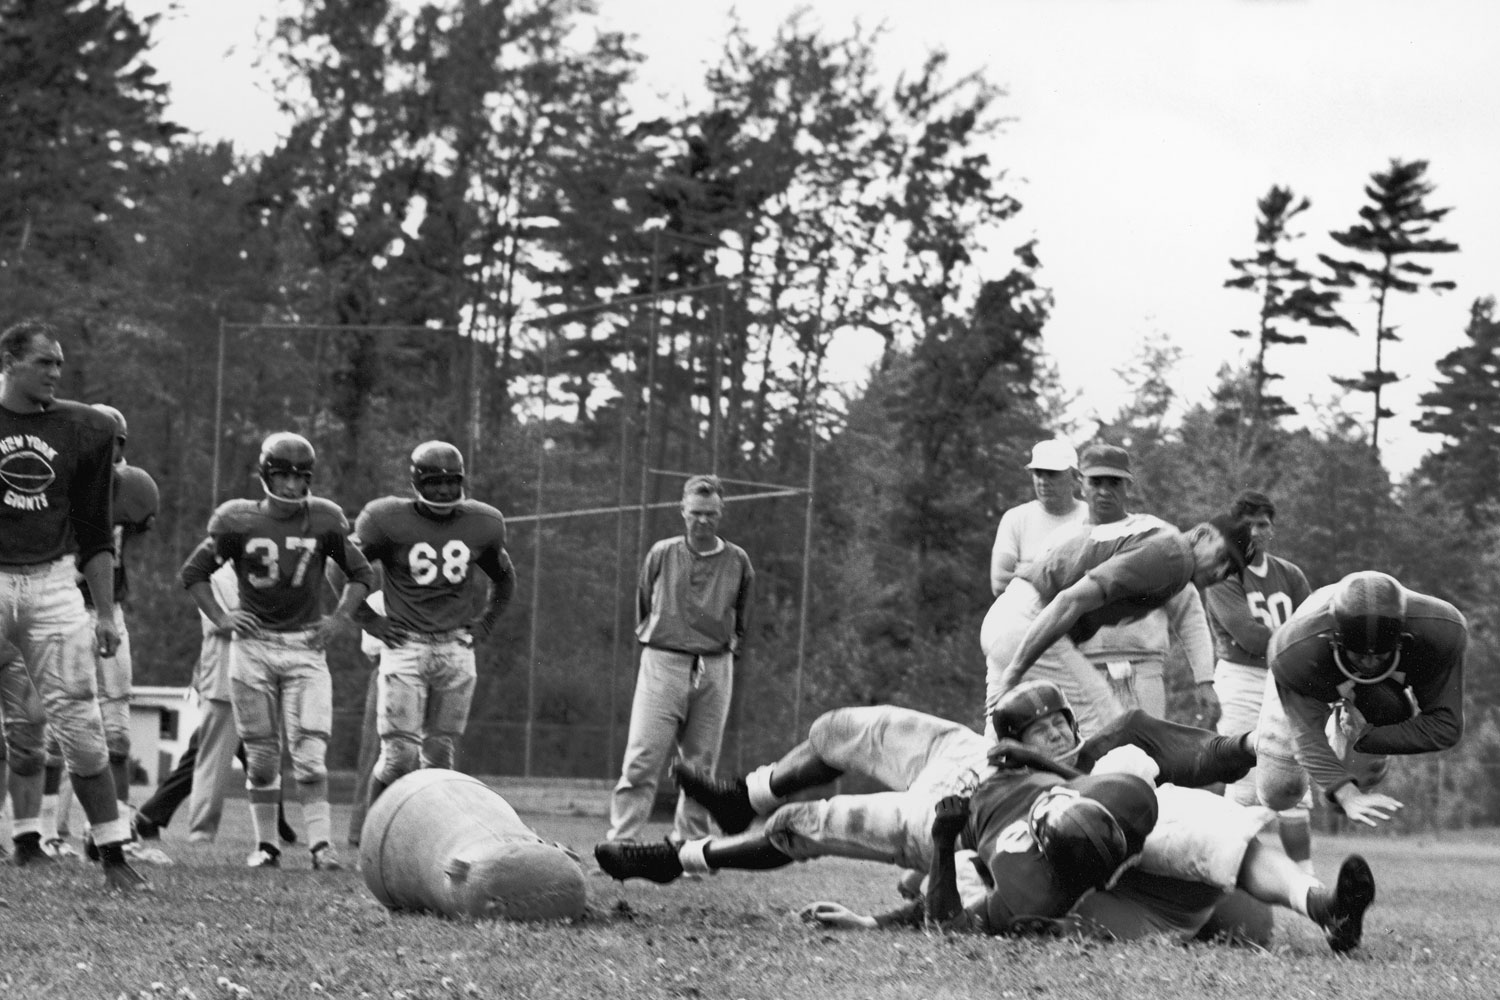 New York Giants players participate in training camp in the 1950's as offensive coordinator Vince Lombardi looks on. Giants co-owner Wellington Mara stands in the background.